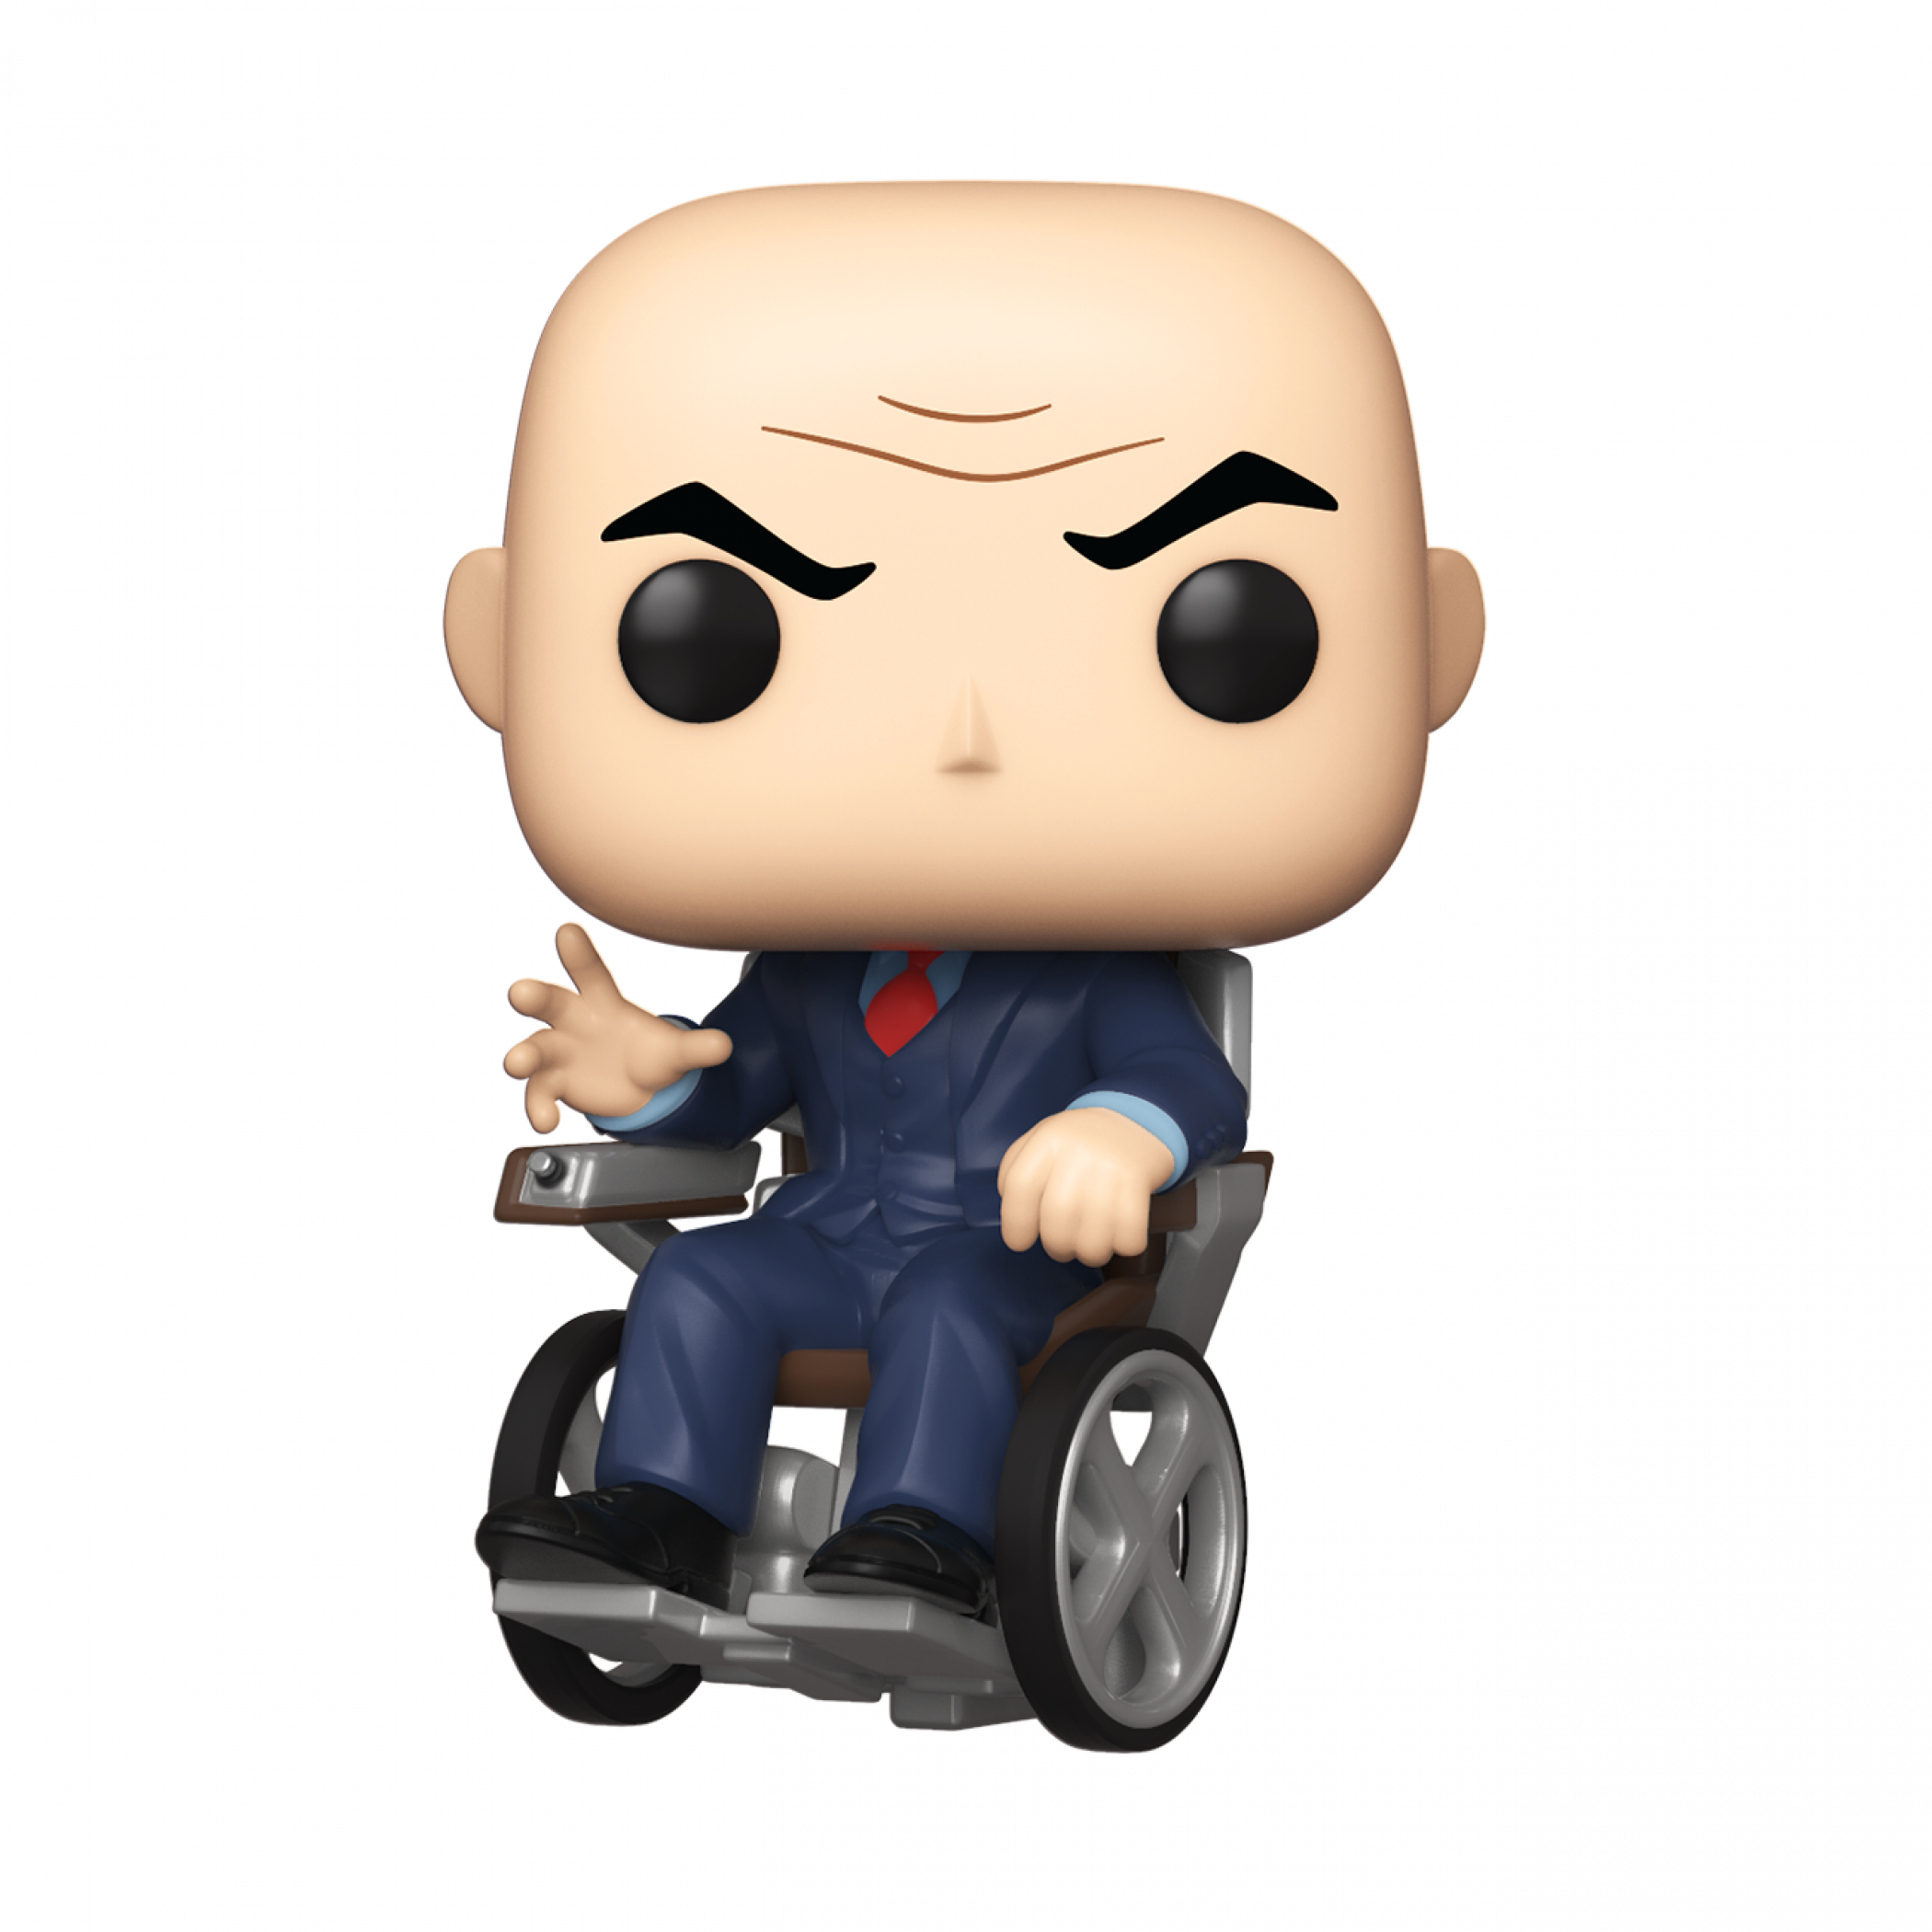 Professor X - Marvel: X-Men 20th Funko POP! Vinyl Figure